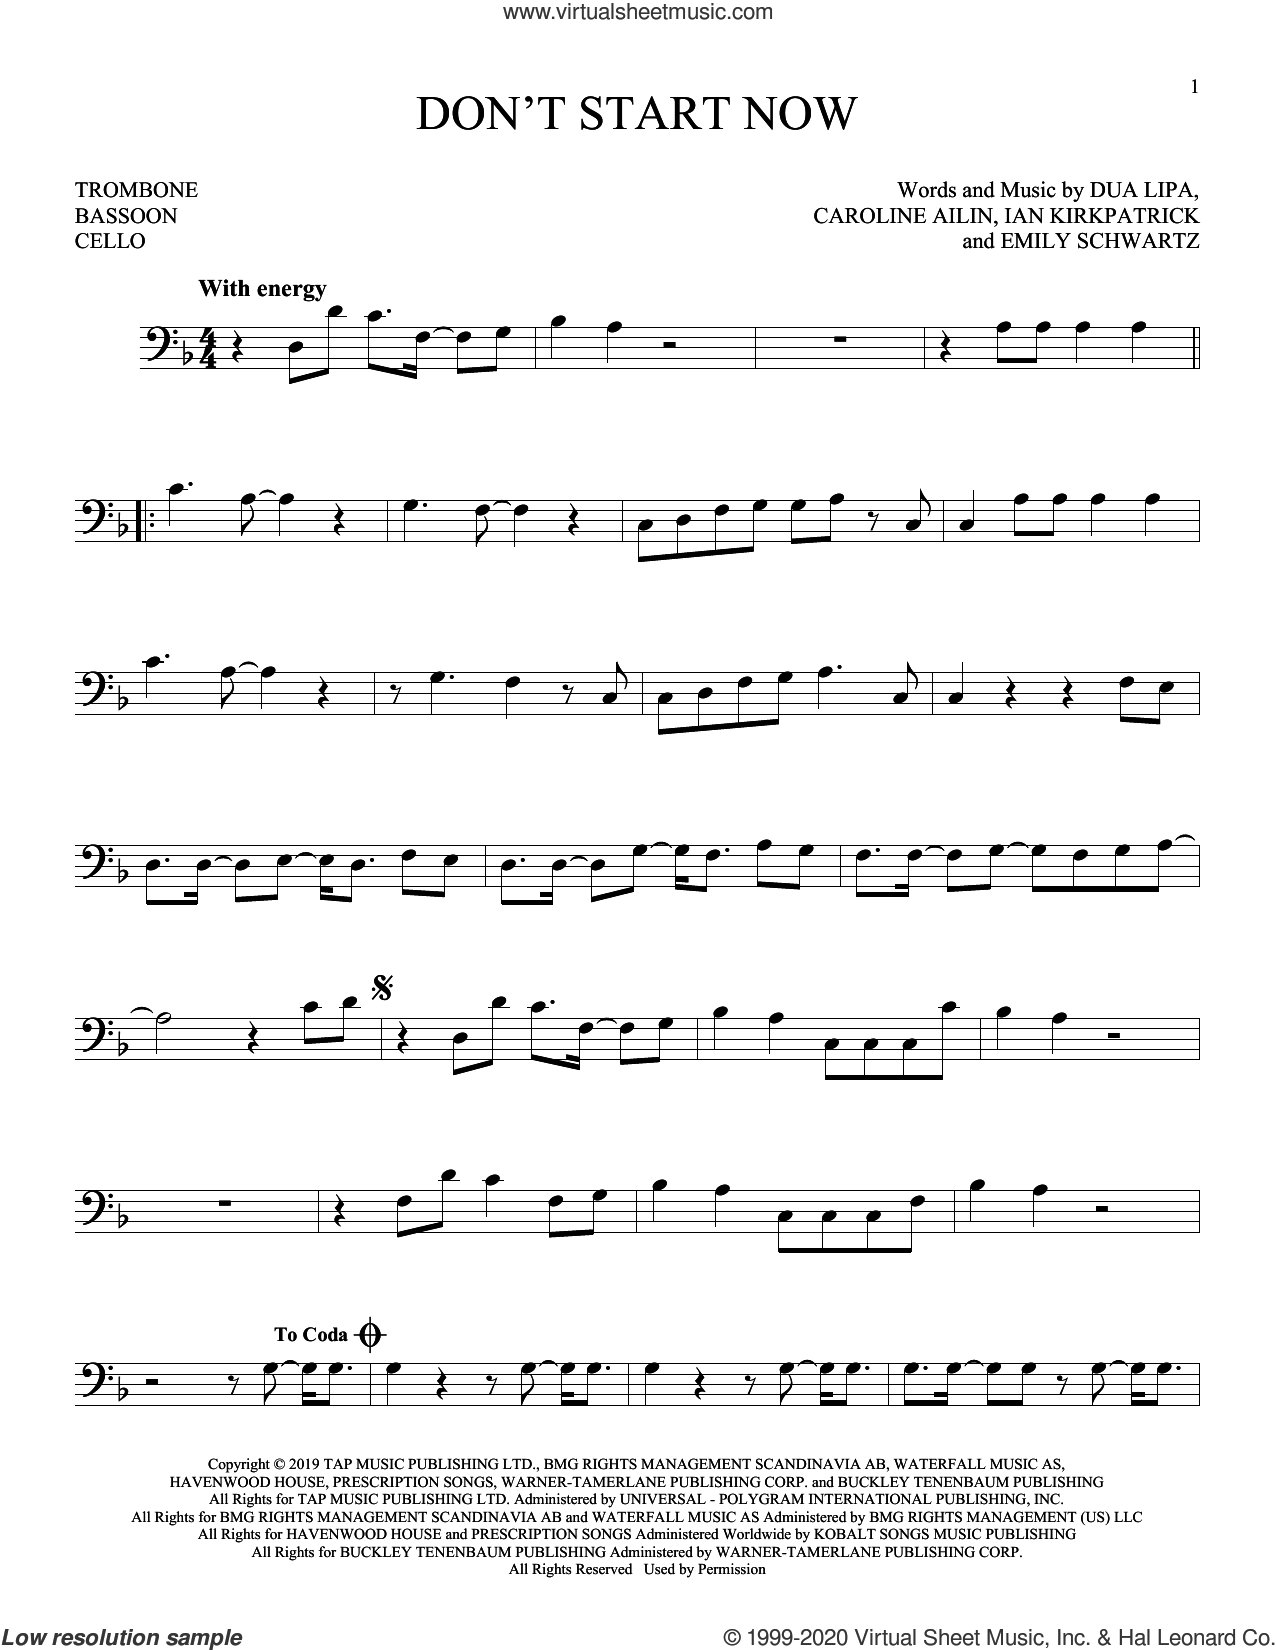 Don't Start Now sheet music for Solo Instrument (bass clef) by Dua Lipa, Caroline Ailin, Emily Schwartz and Ian Kirkpatrick, intermediate skill level